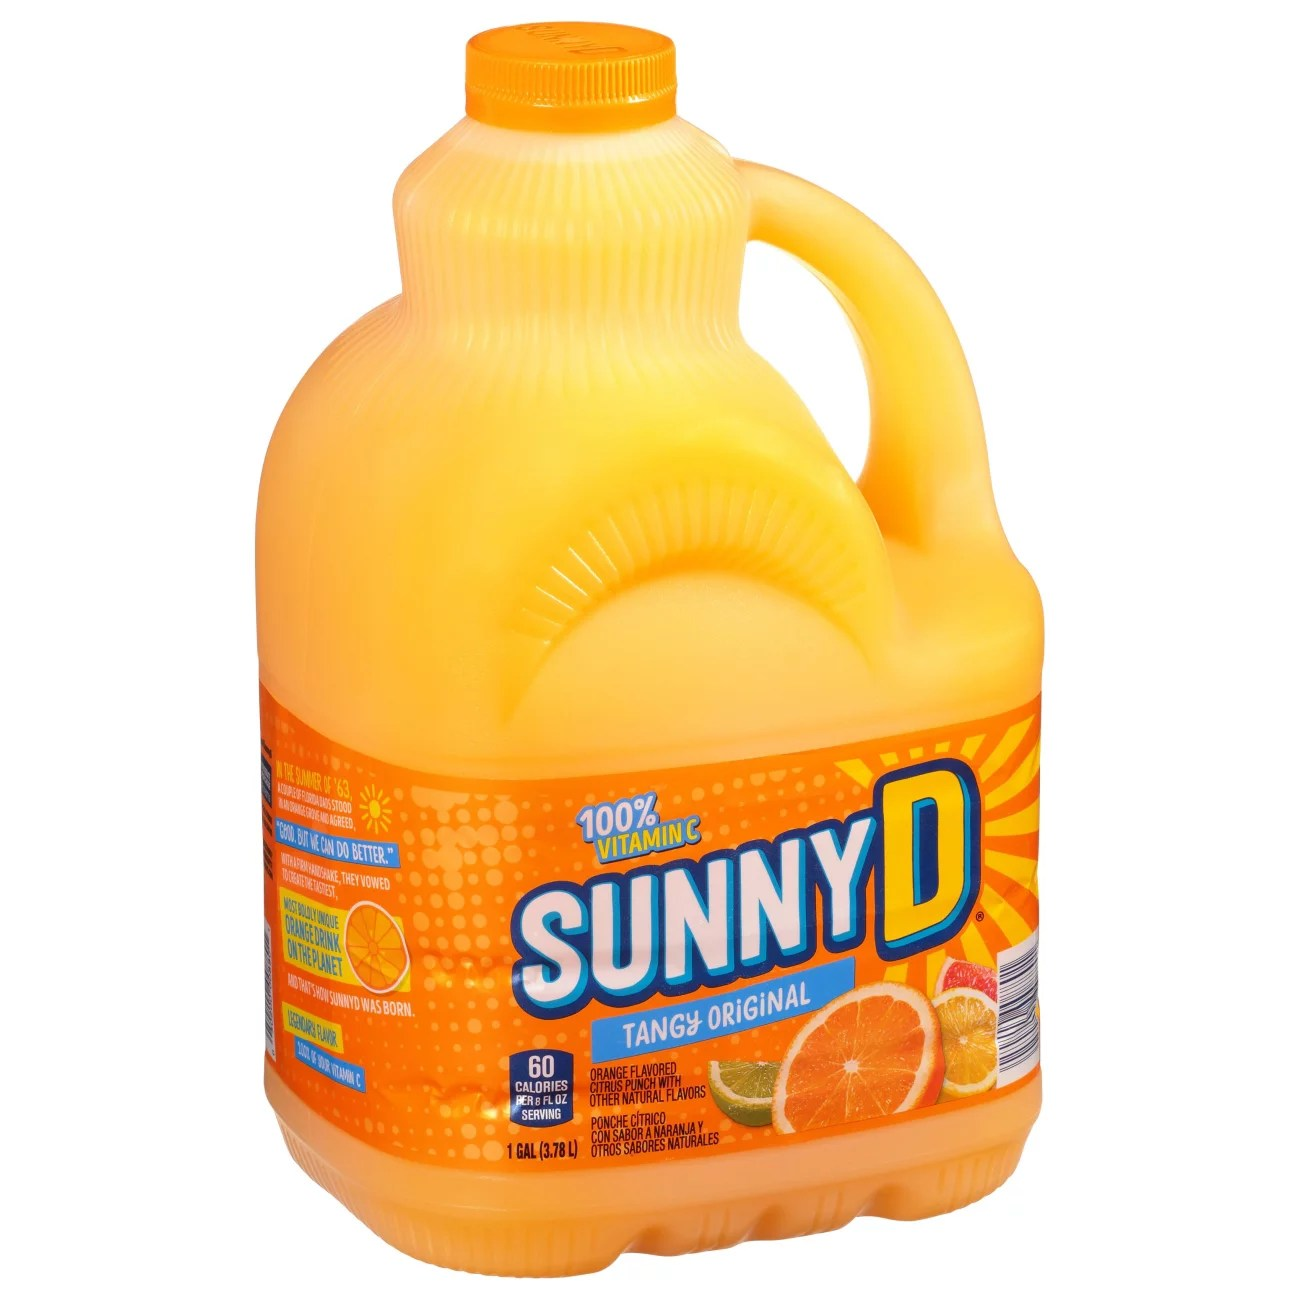 Sunny D Calories : sunny, calories, Sunny, Tangy, Original, Orange, Flavored, Citrus, Punch, Juice, H-E-B